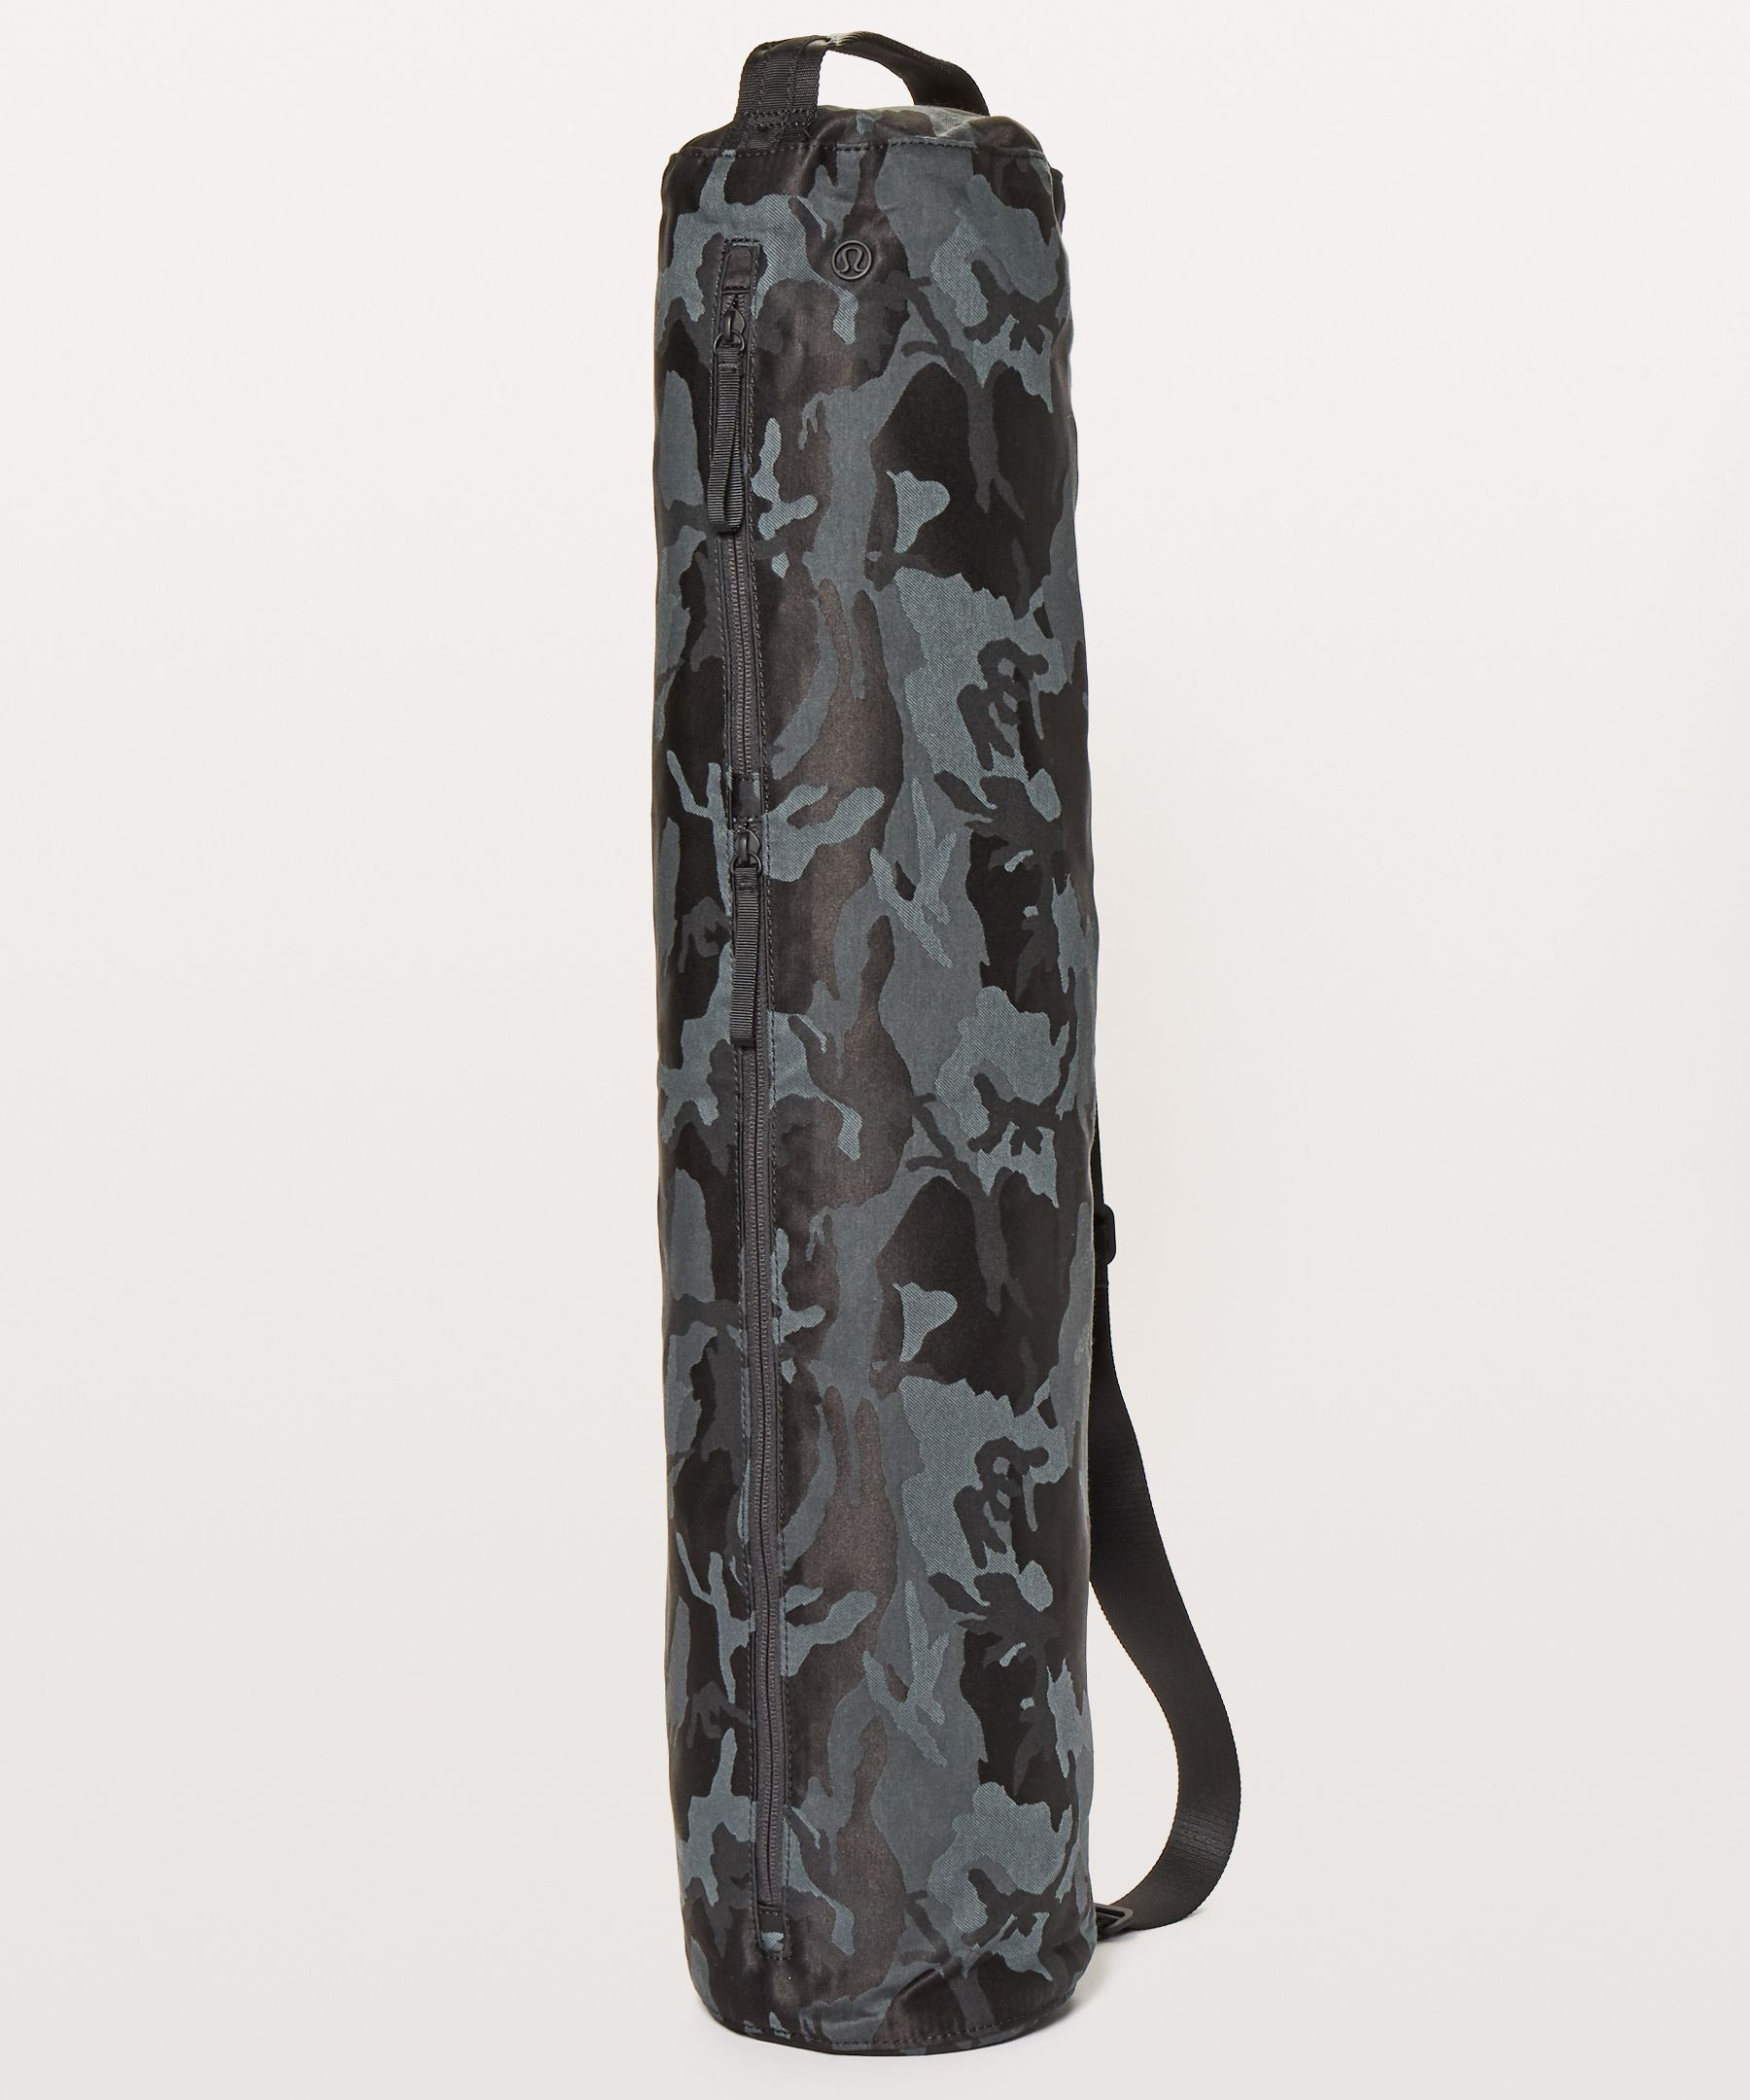 Get Rolling Yoga Mat Bag 17 L New by Lululemon